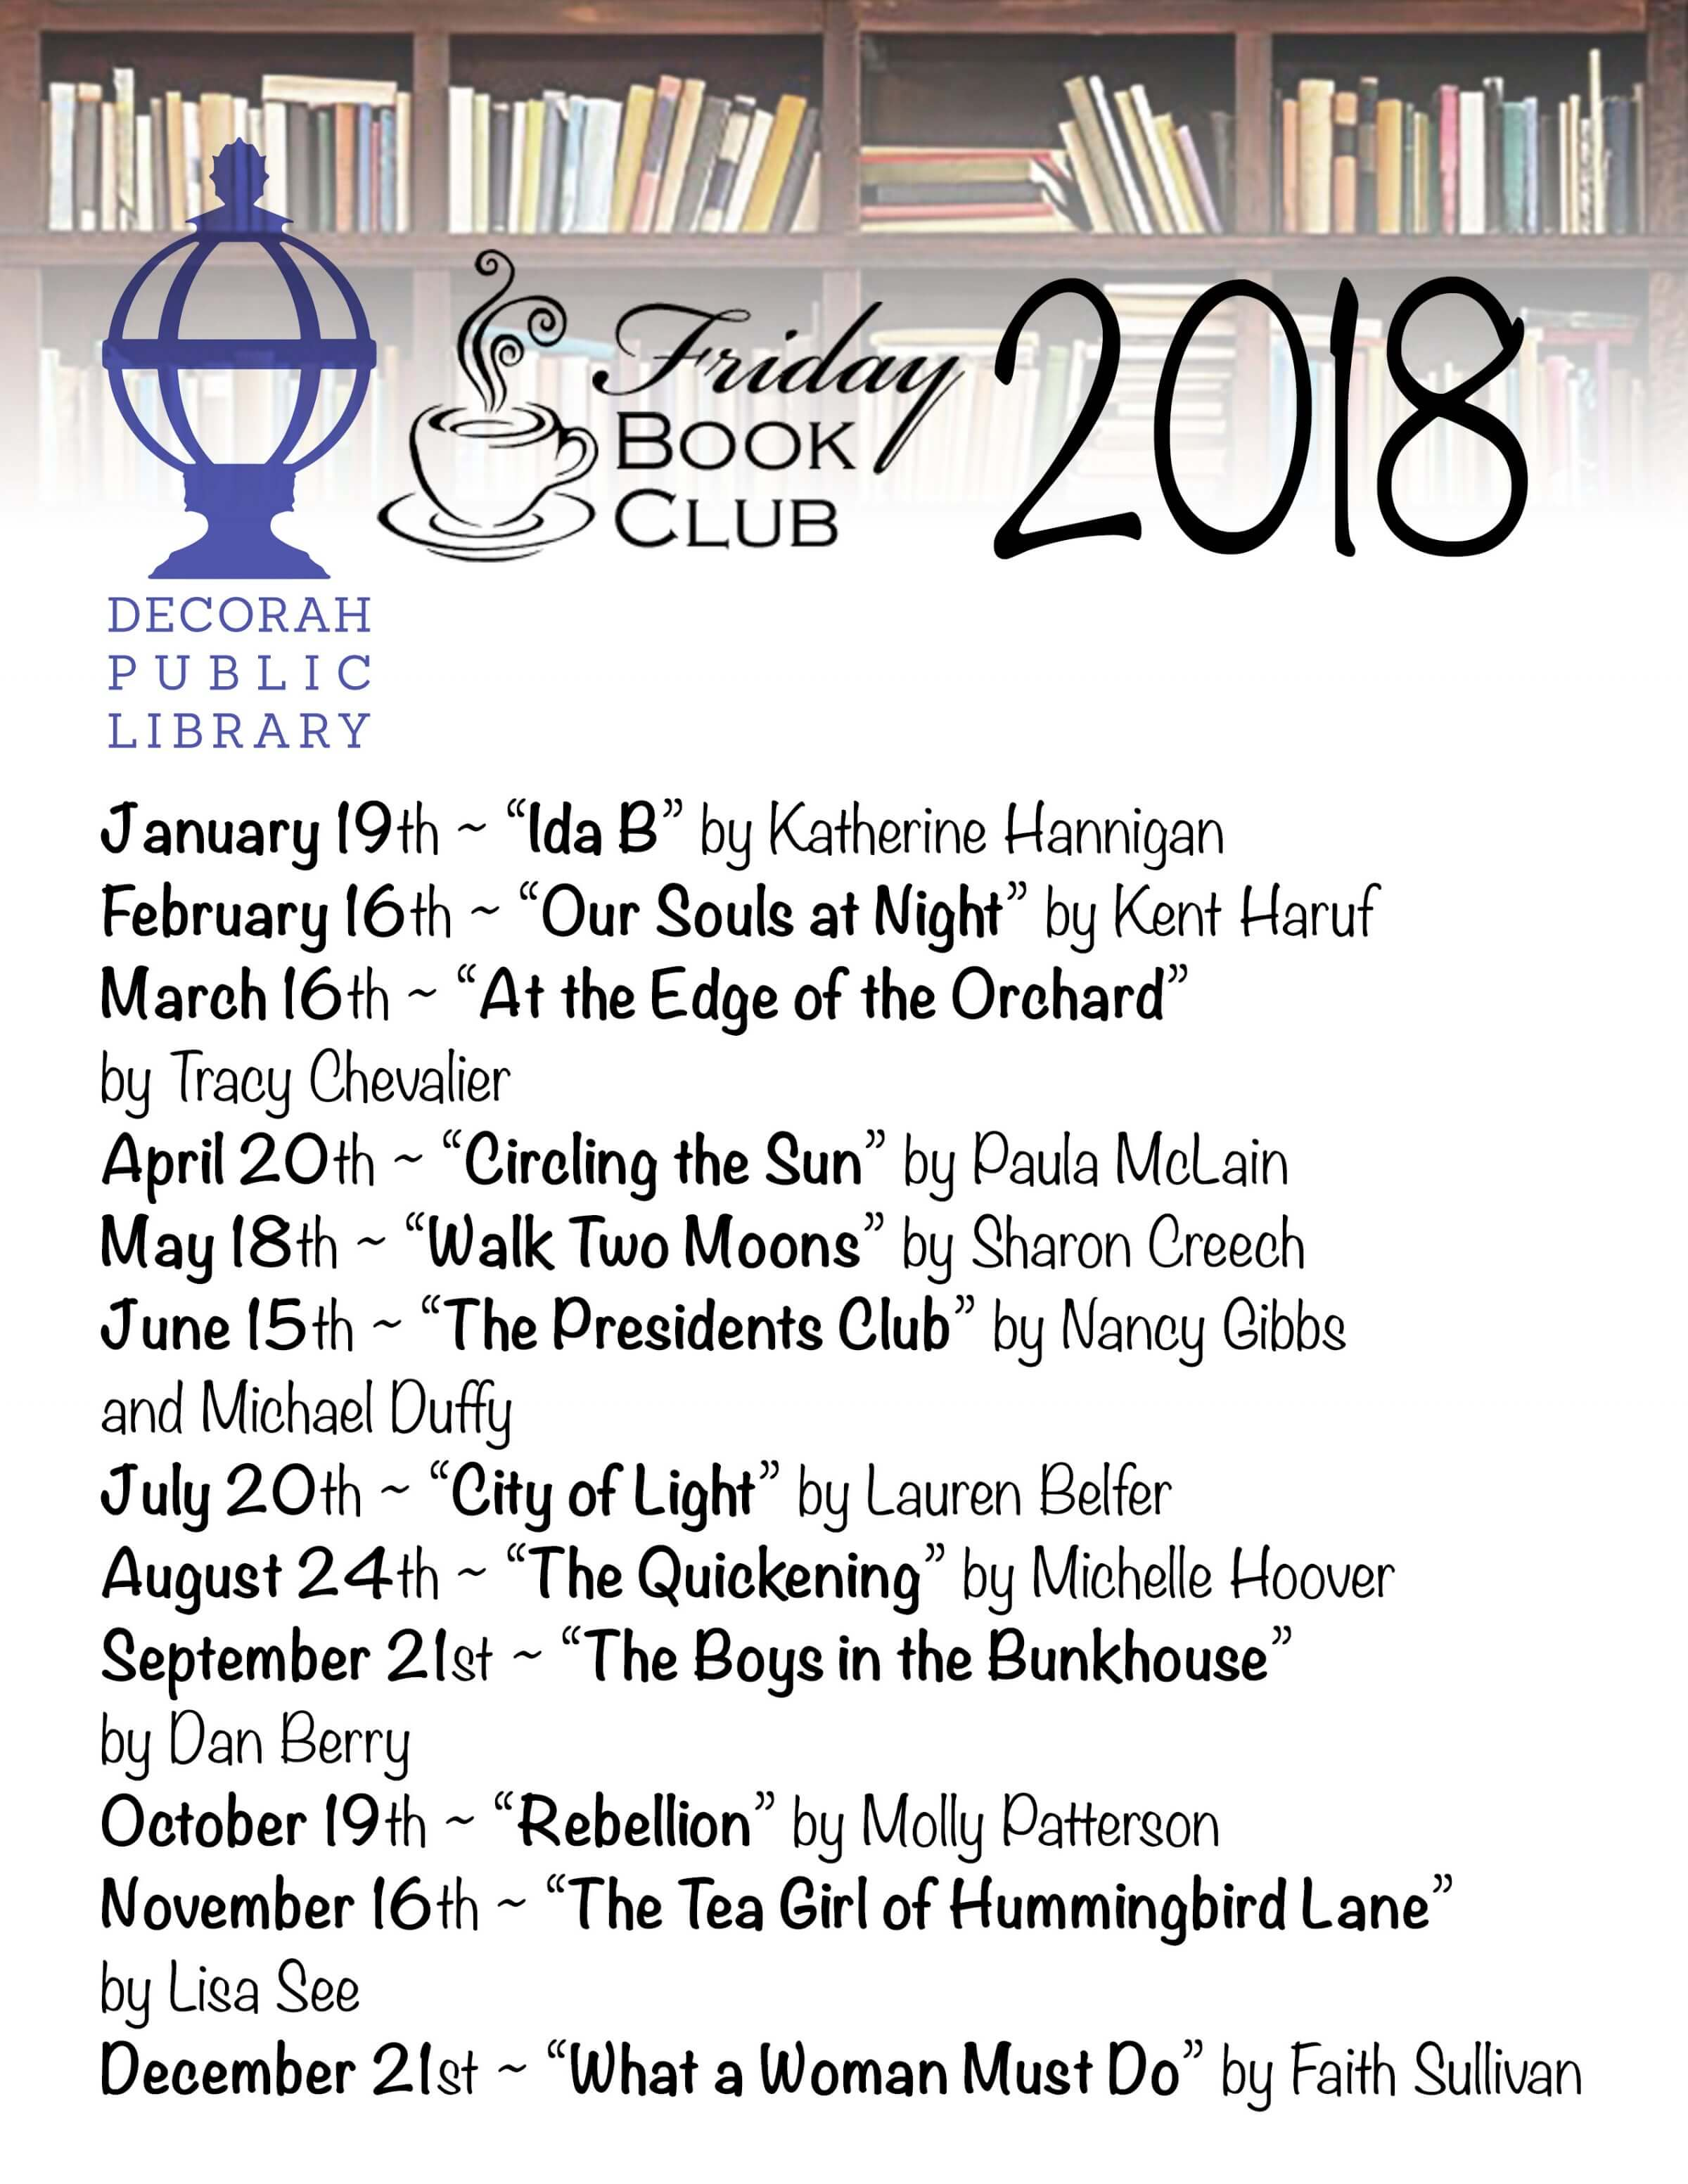 2018 Friday Book Club Titles & Dates